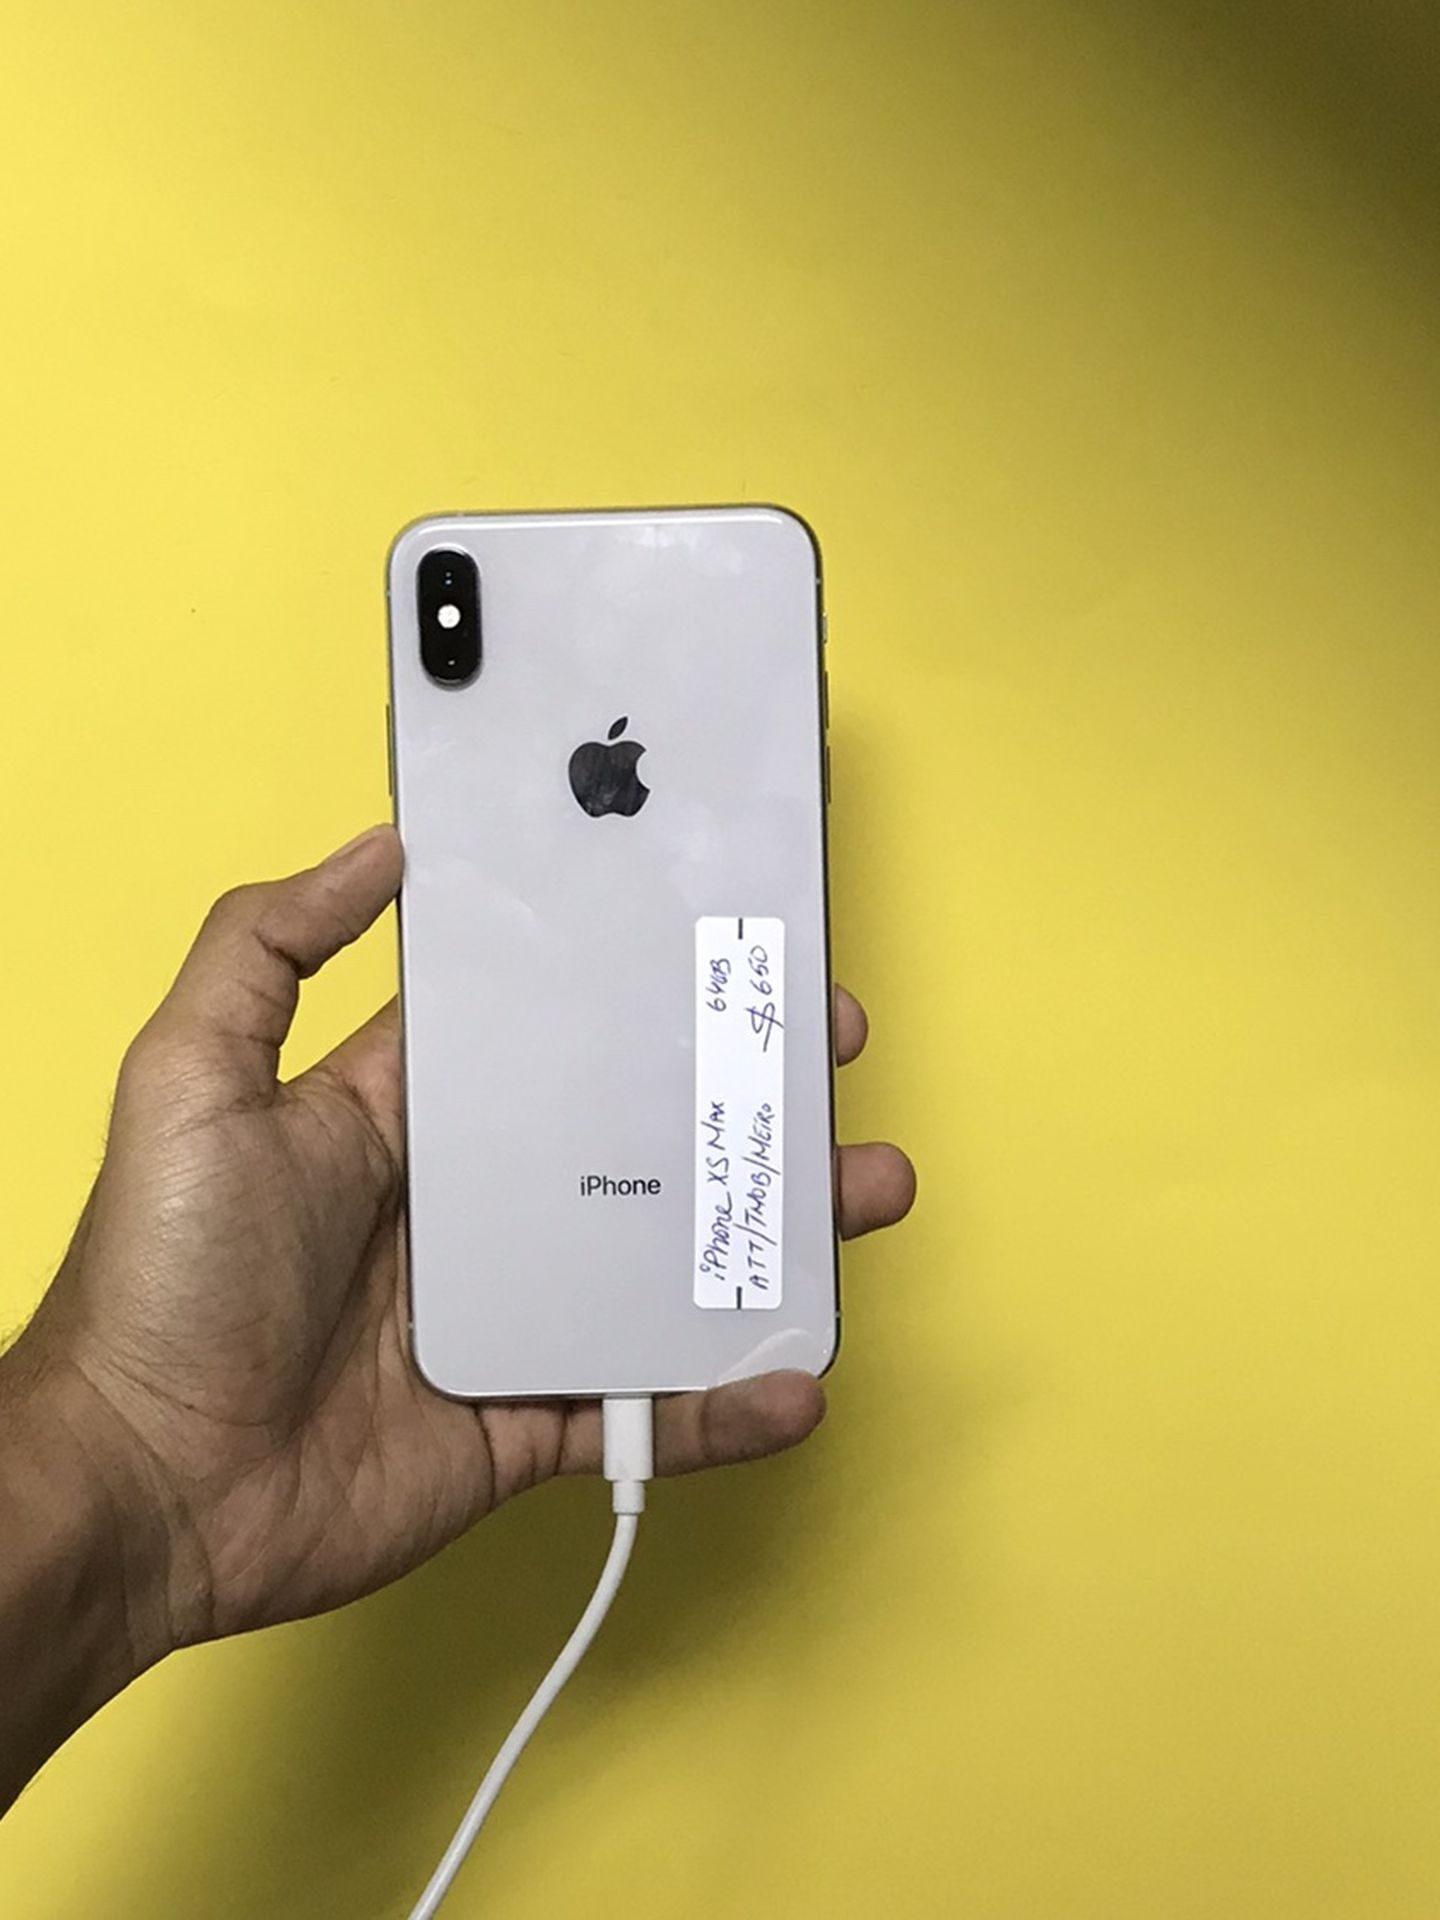 iPhone XS Max 64GB AT&T TMobile Metro Finanacing Available For 54 Down No Credit Needed Take Home Today